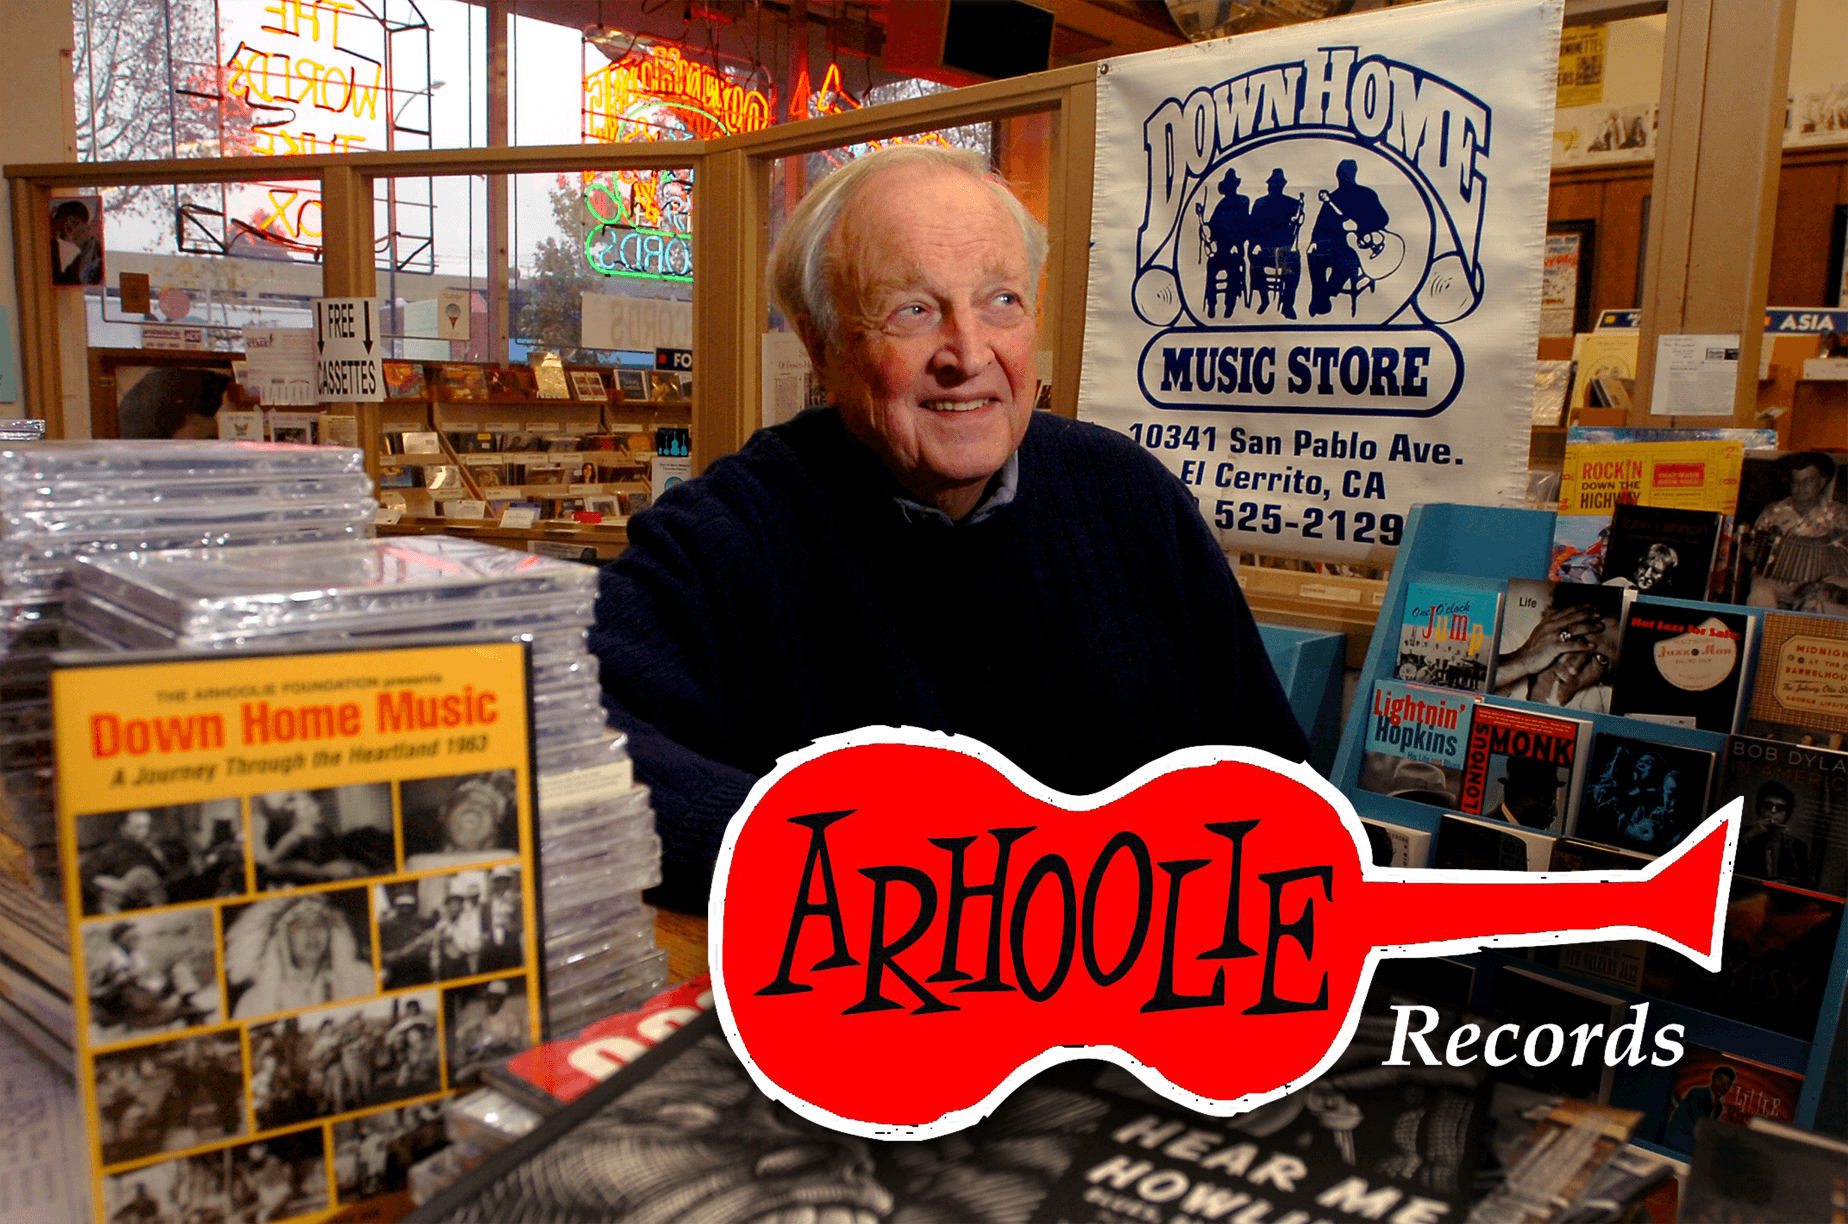 The Smithsonian acquired the Arhoolie label from Chris and his partner Tom Diamant in 2016 to assure that his recordings would survive and remain available to future generations.